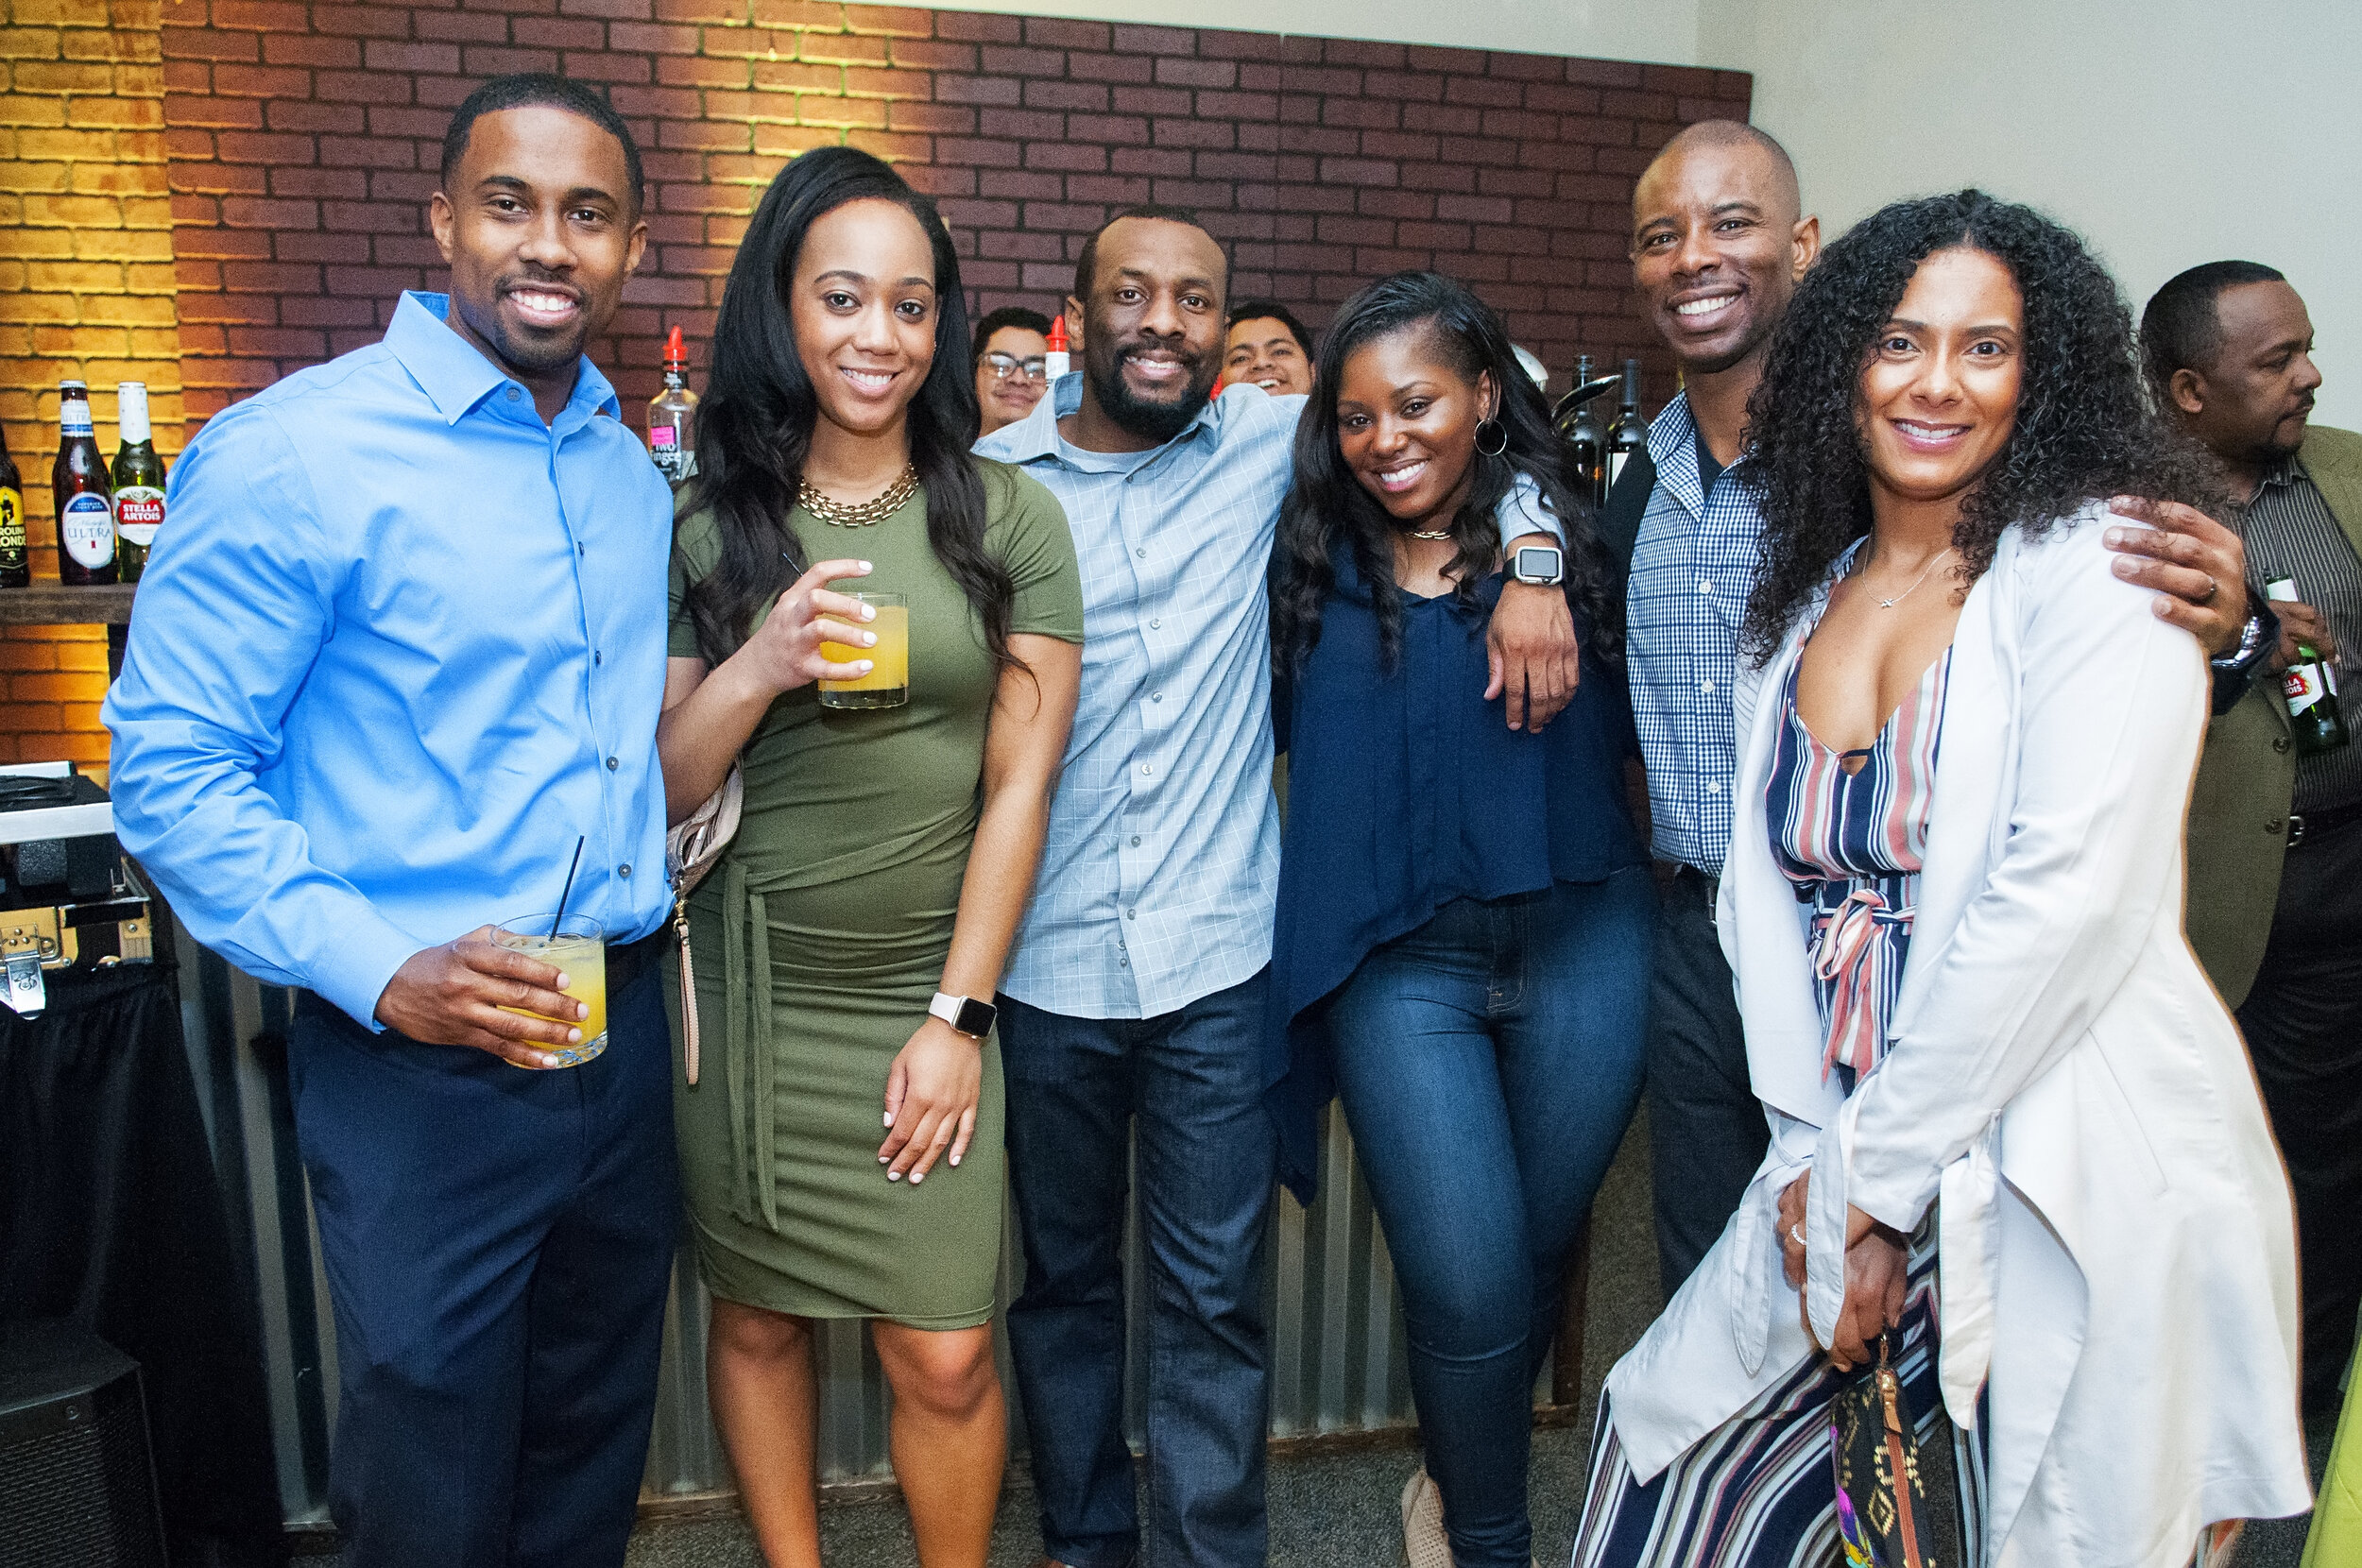 Levine Museum of the New South Presents The Taste of the New South 2-23-18 by Jon Strayhorn 200.jpg